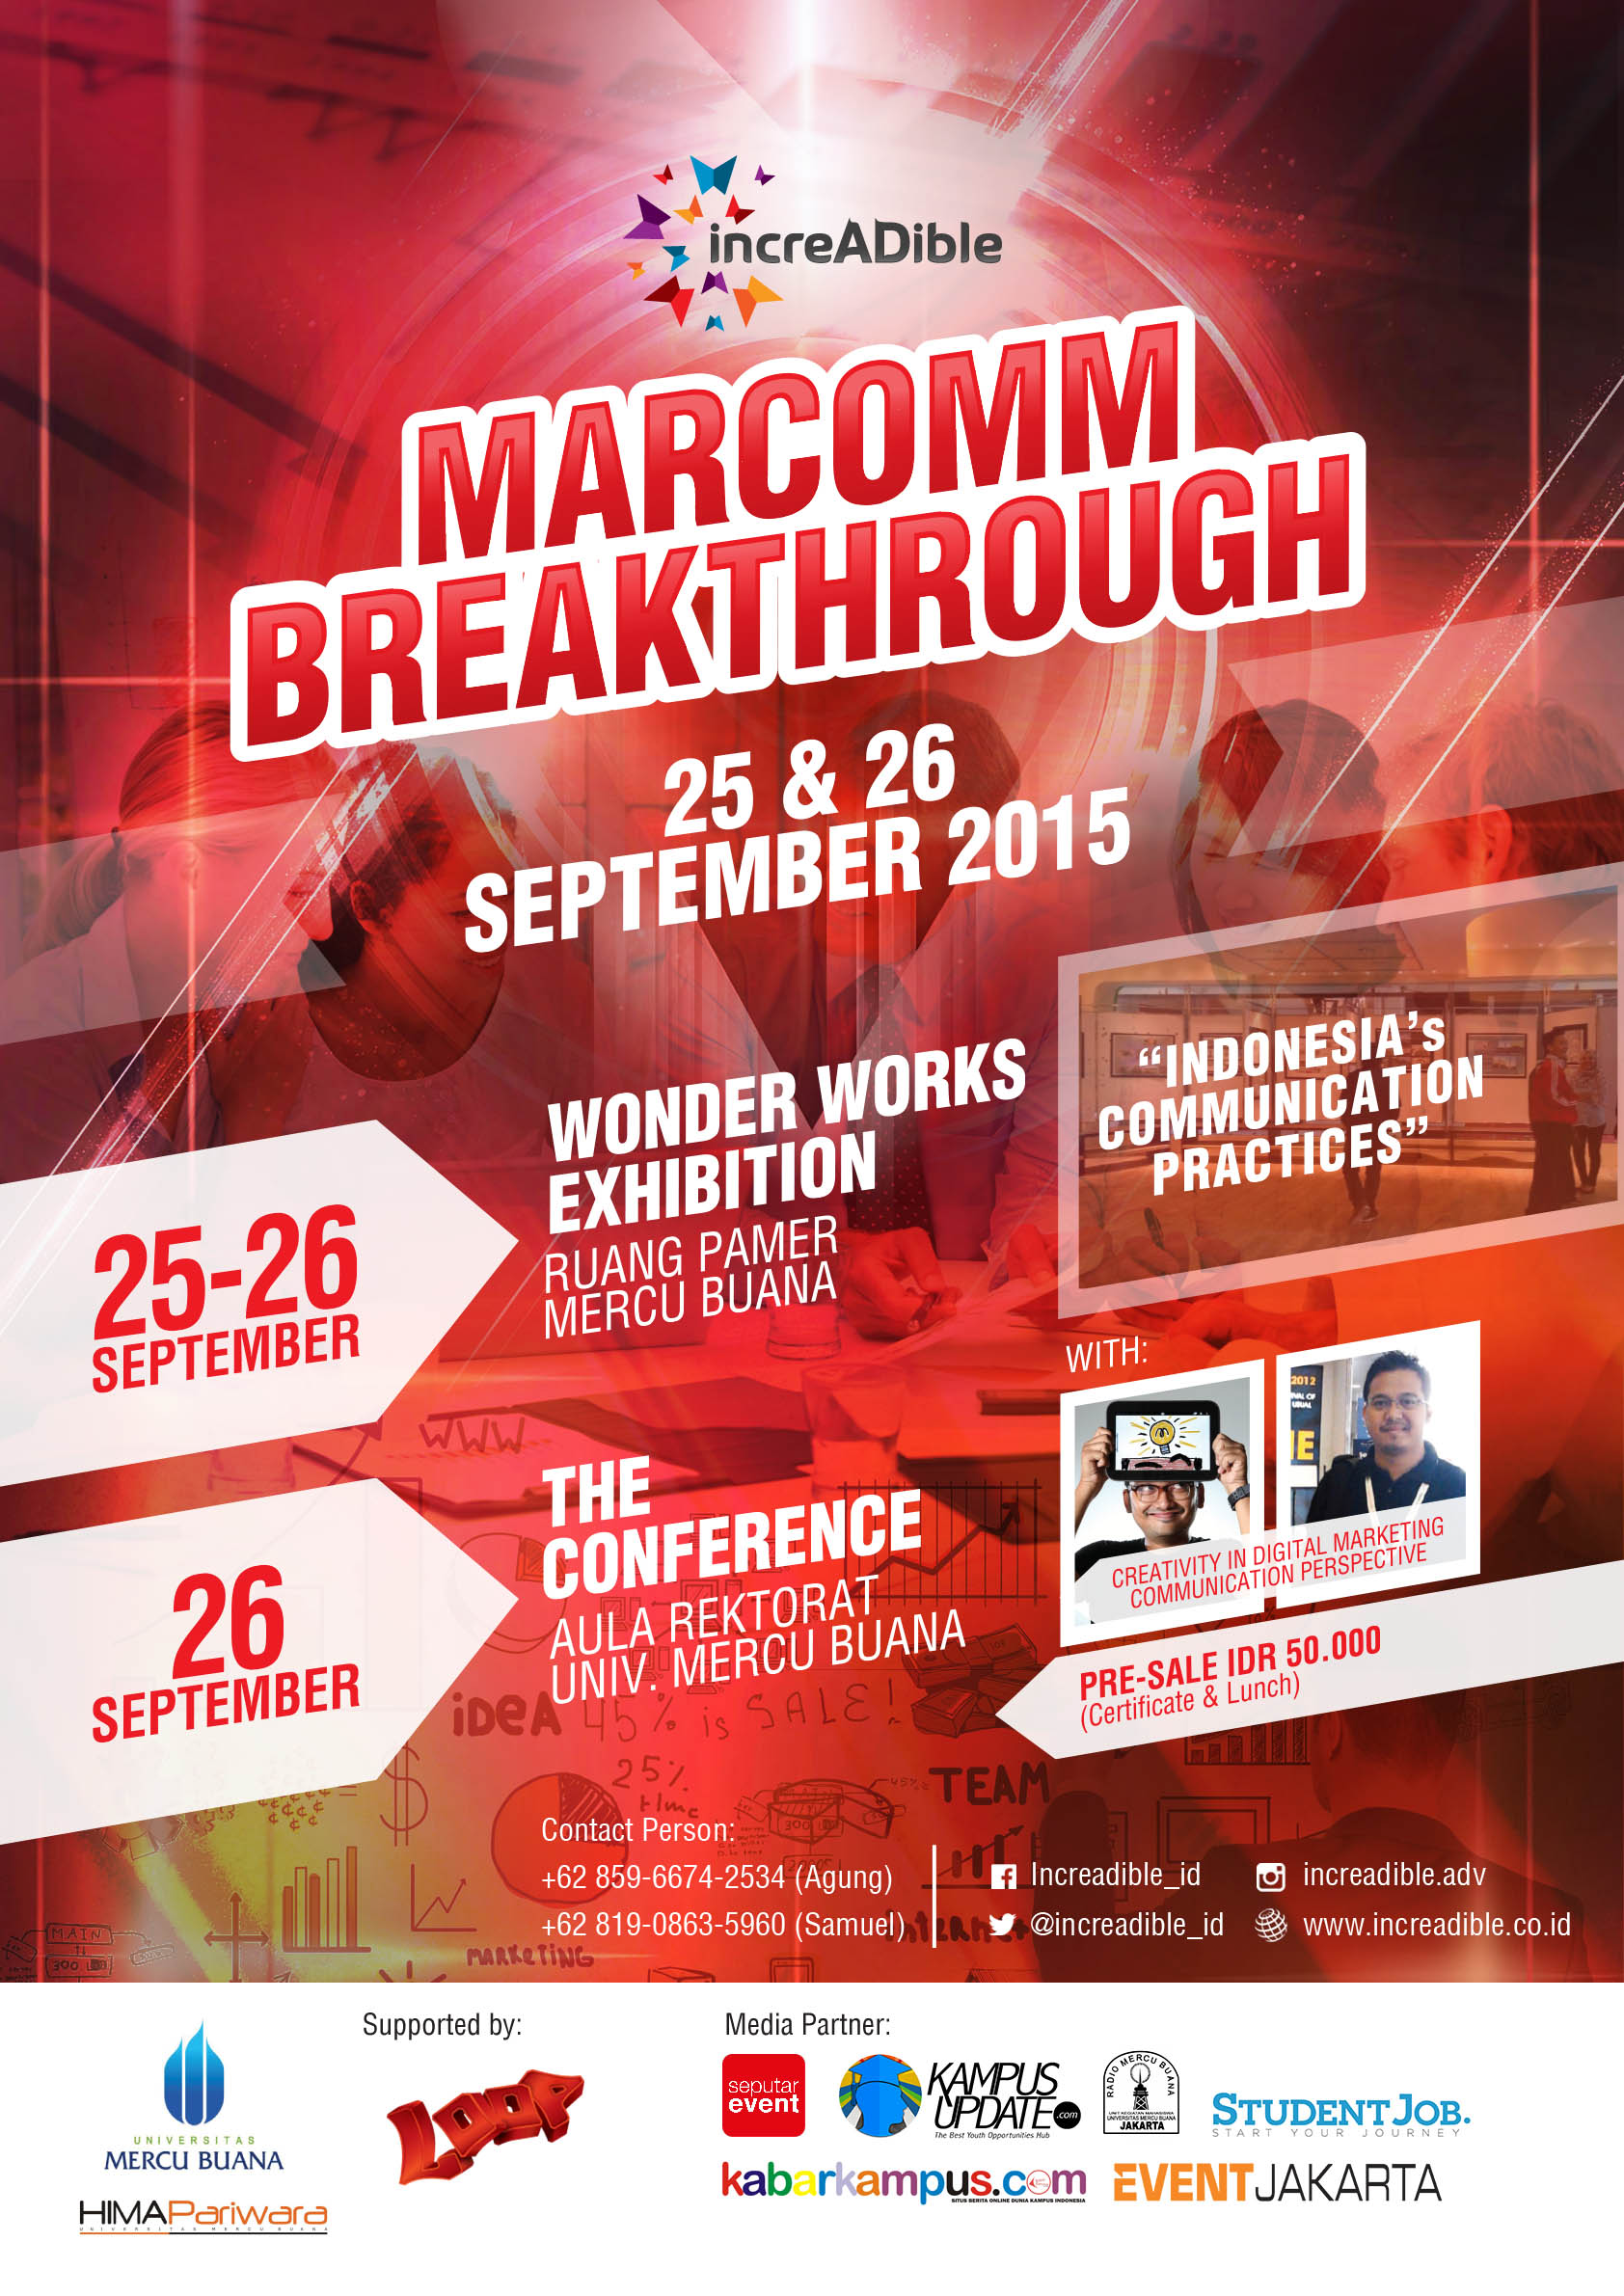 POSTER MARCOM BREAKTHROUGH